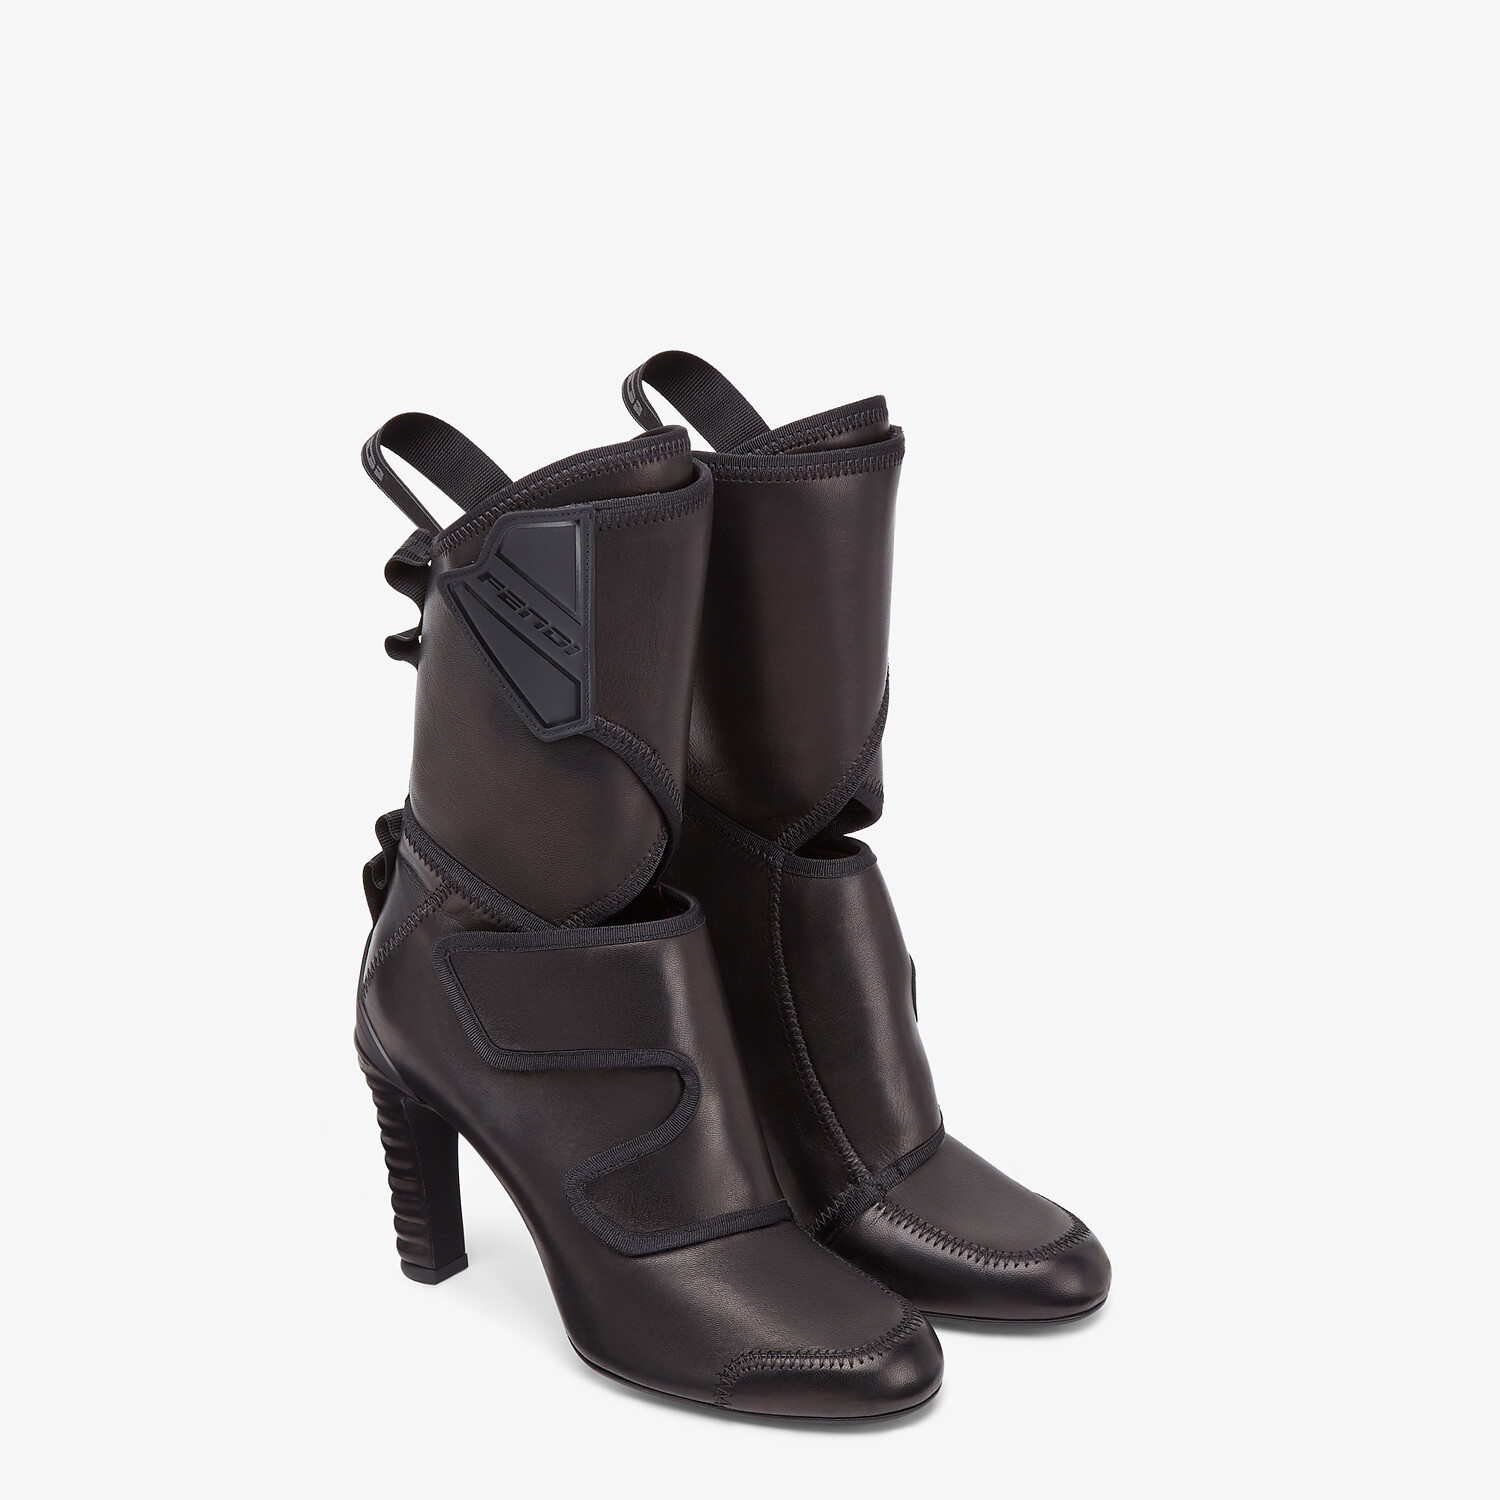 FENDI ANKLE BOOTS - Black leather Promenade Booties - view 4 detail